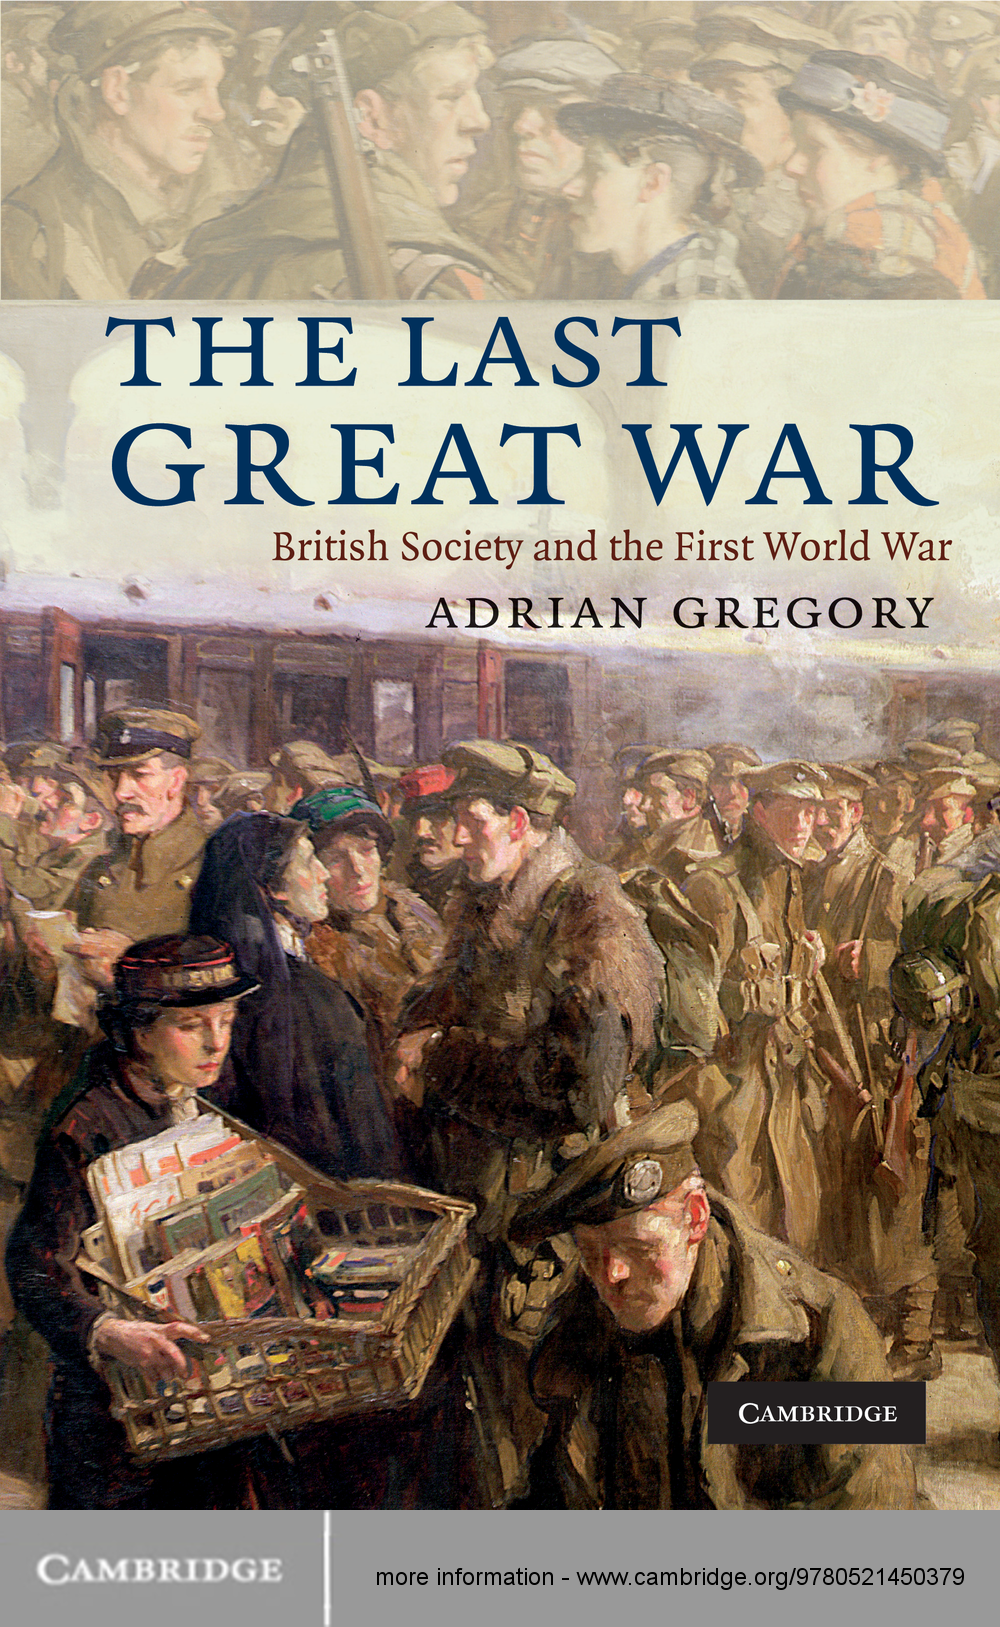 The Last Great War British Society and the First World War